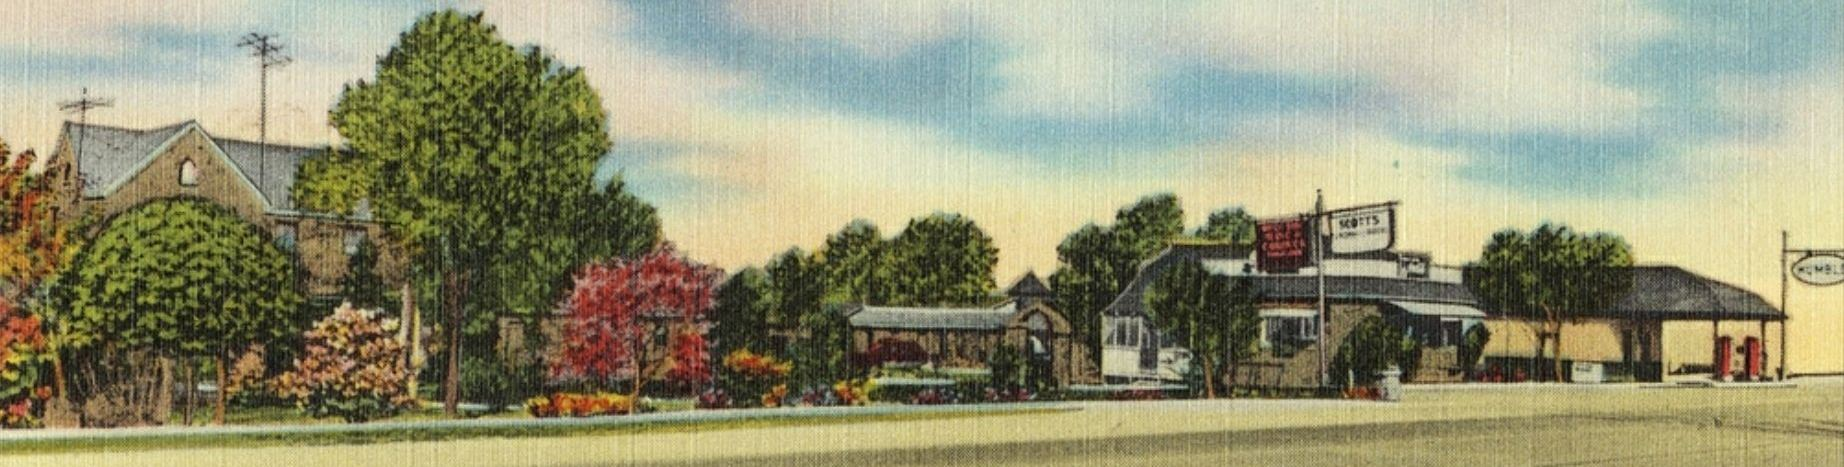 Post card with Bankhead Highway in the foreground and Rock Courts and Scott's in the background.